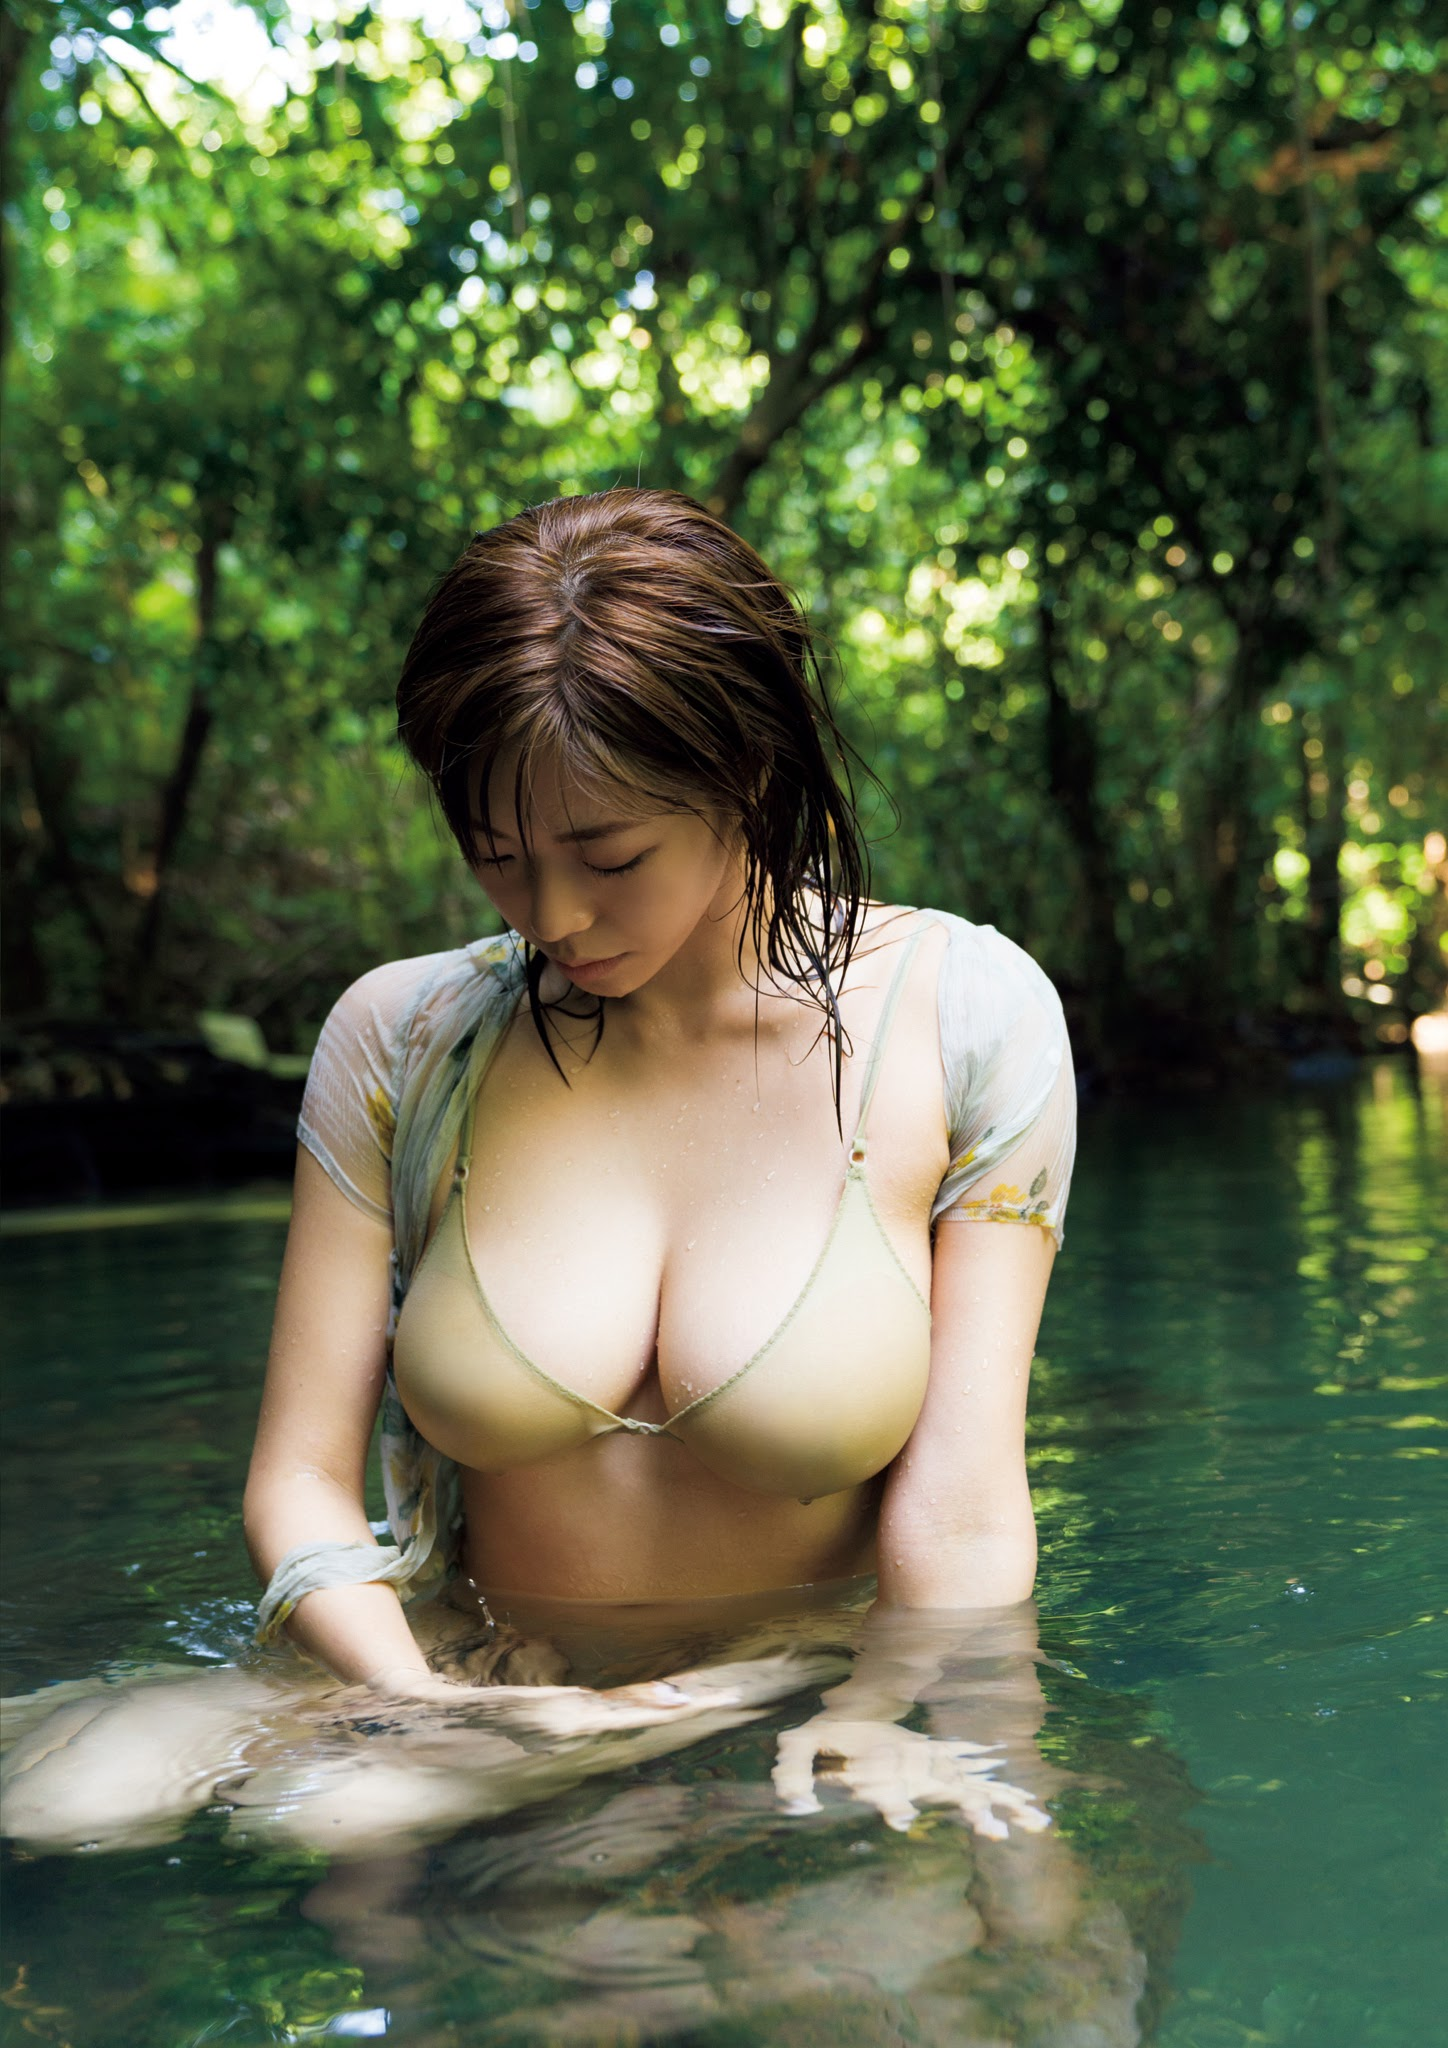 Super body of H cup Minami Wachi 2020 that exposes body and mind in tropical Thailand038